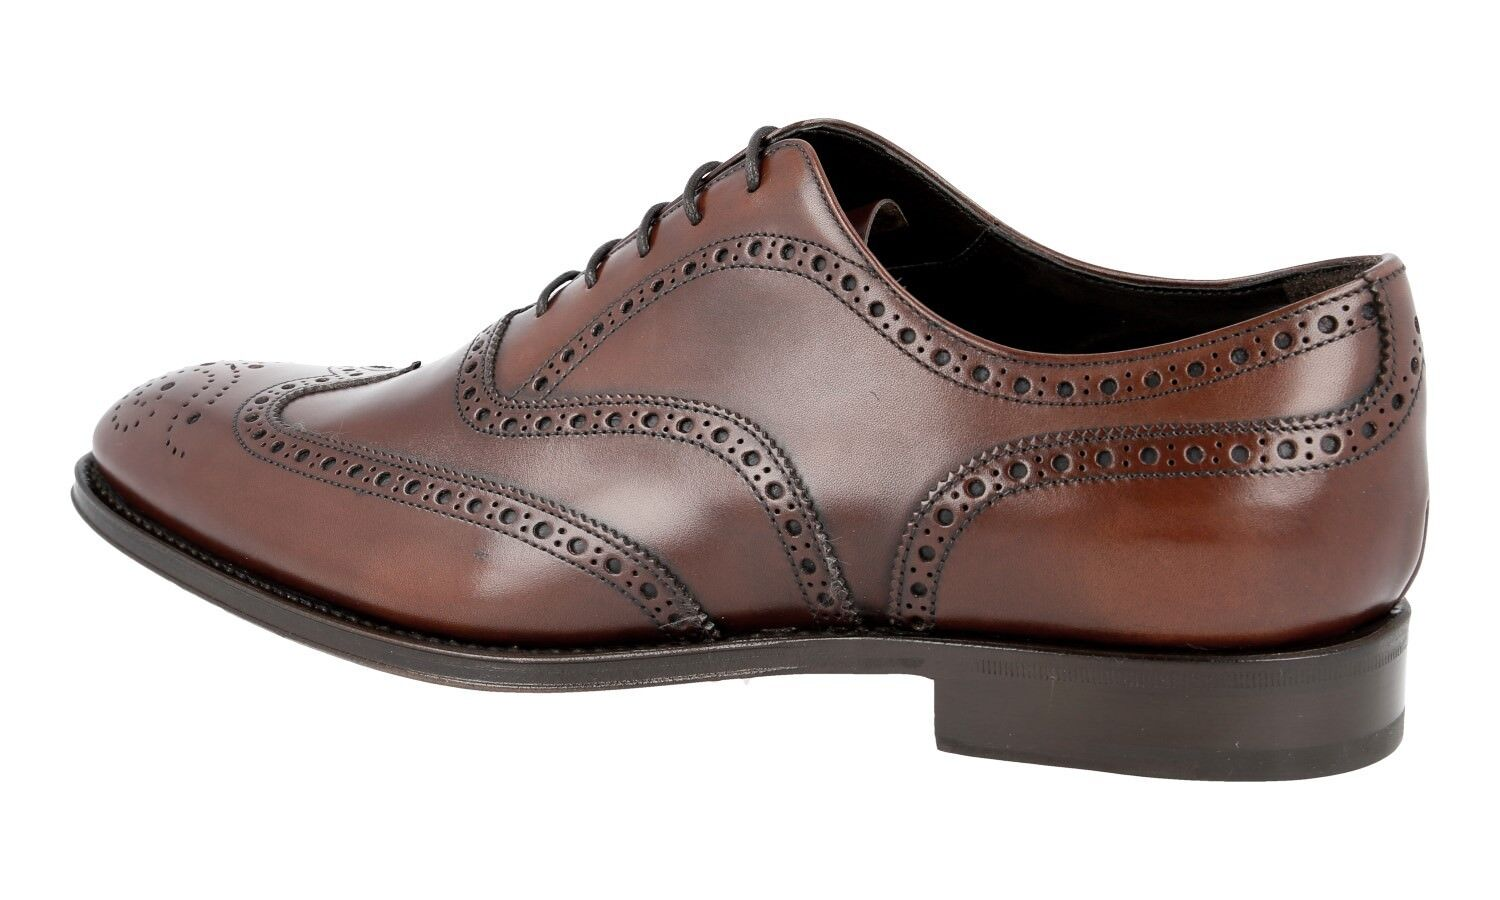 LUXUS LUXUS LUXUS PRADA OXFORD WINGTIP FULL BROGUE SCHUHE 2EB127 BRAUN NEU NEW 9,5 43,5 44 9b7c57